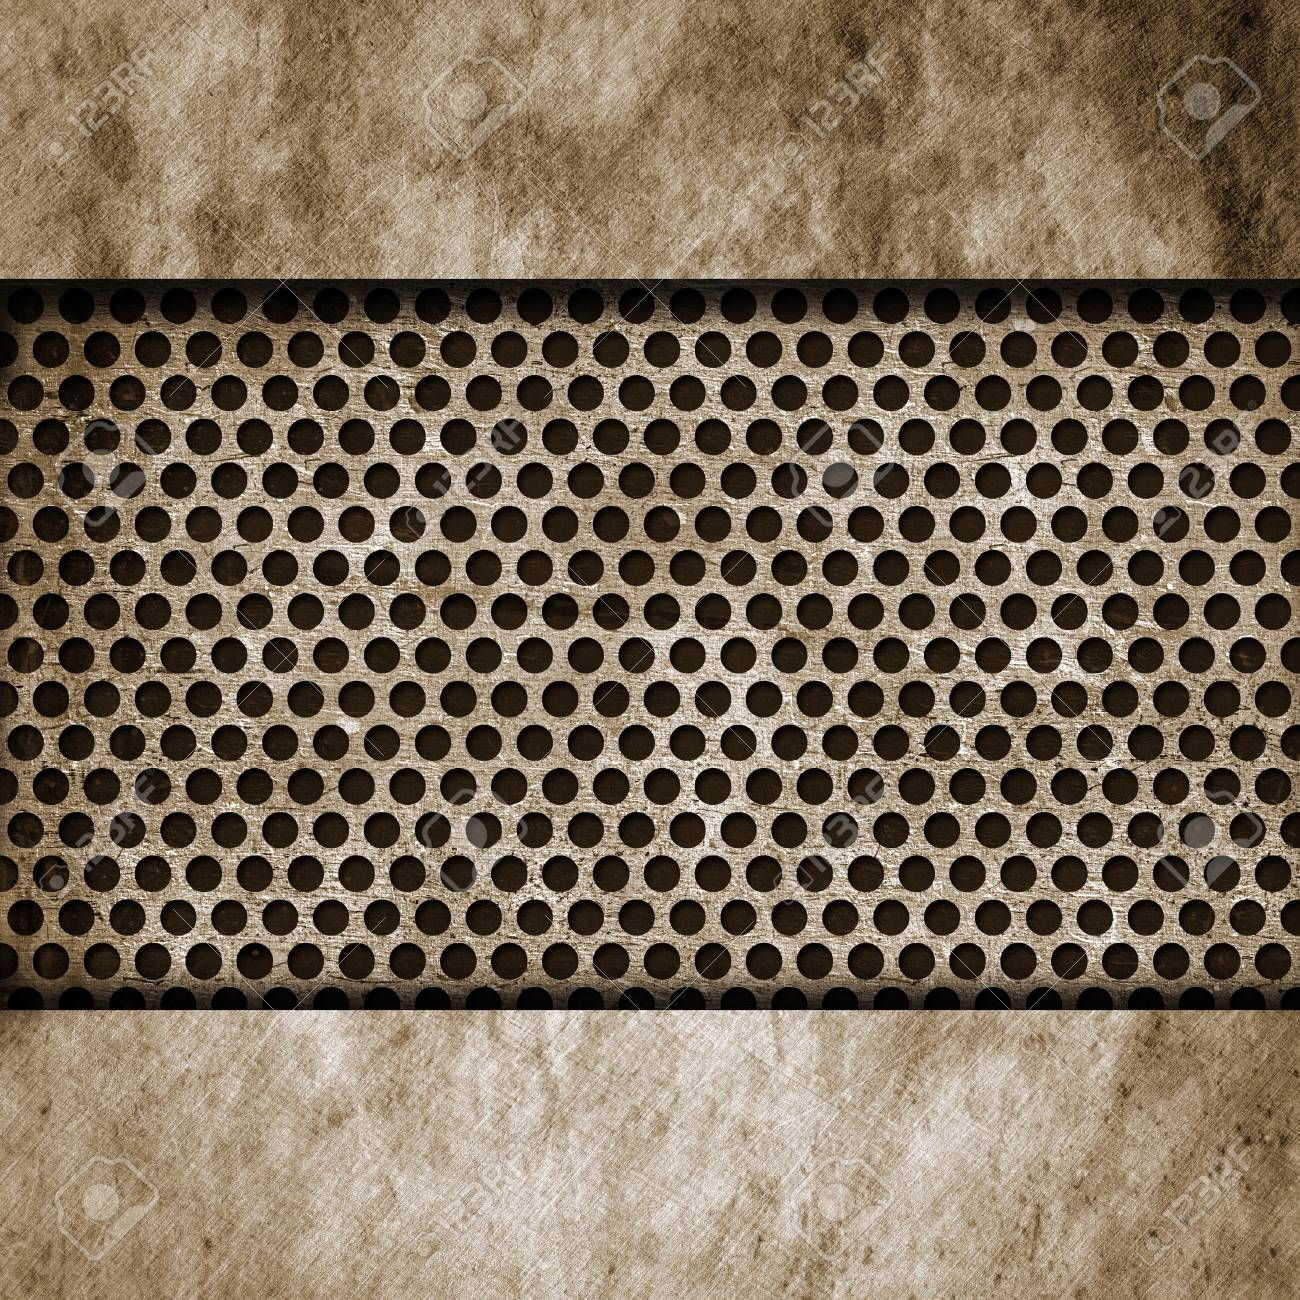 Metal textured background with copyspace. Stock Photo - 20559664